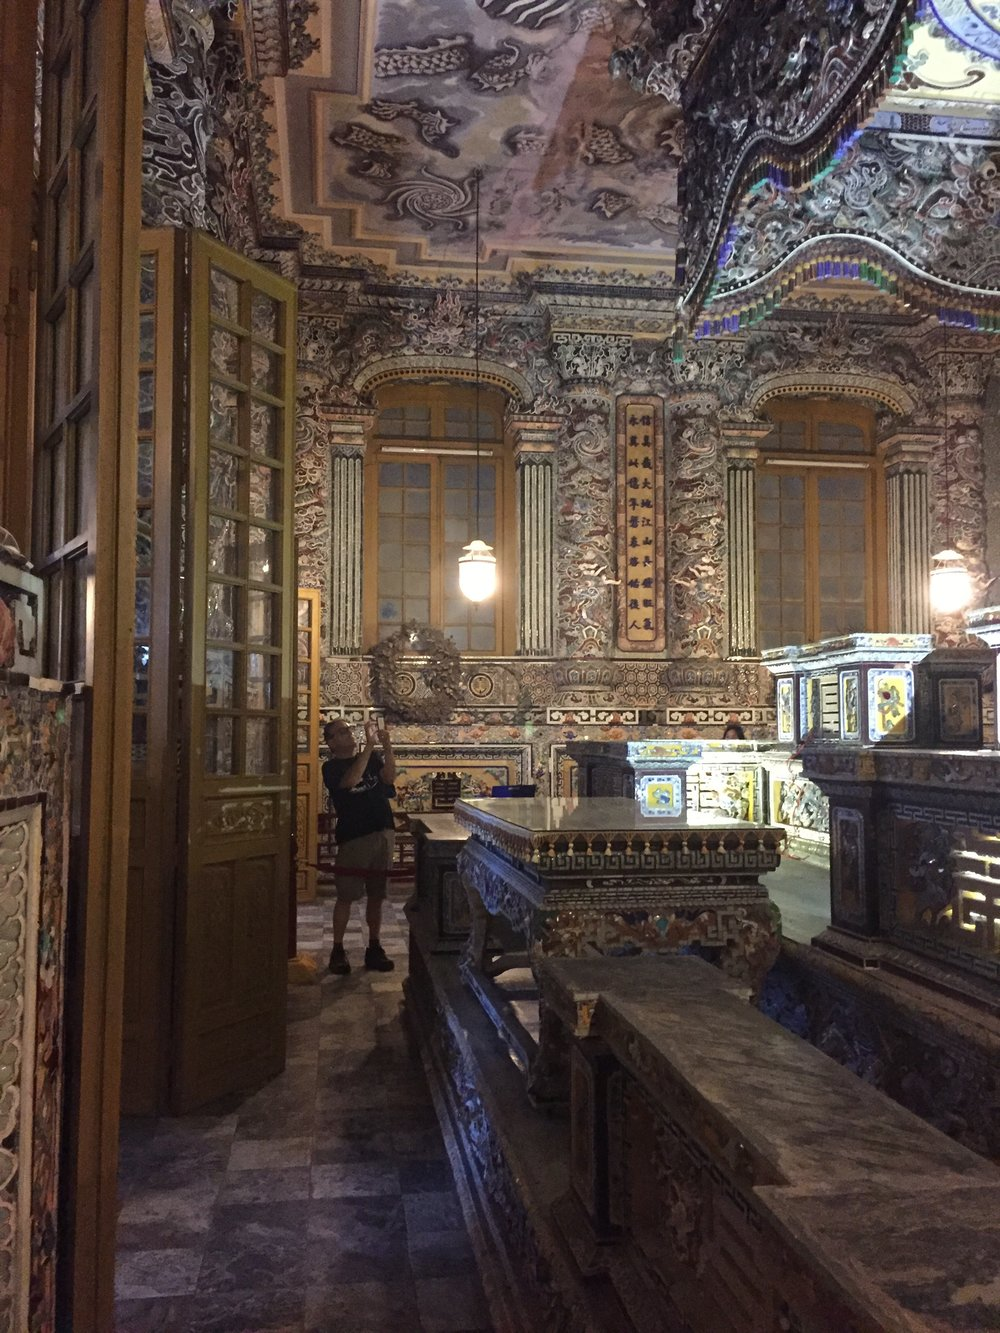 The tomb room